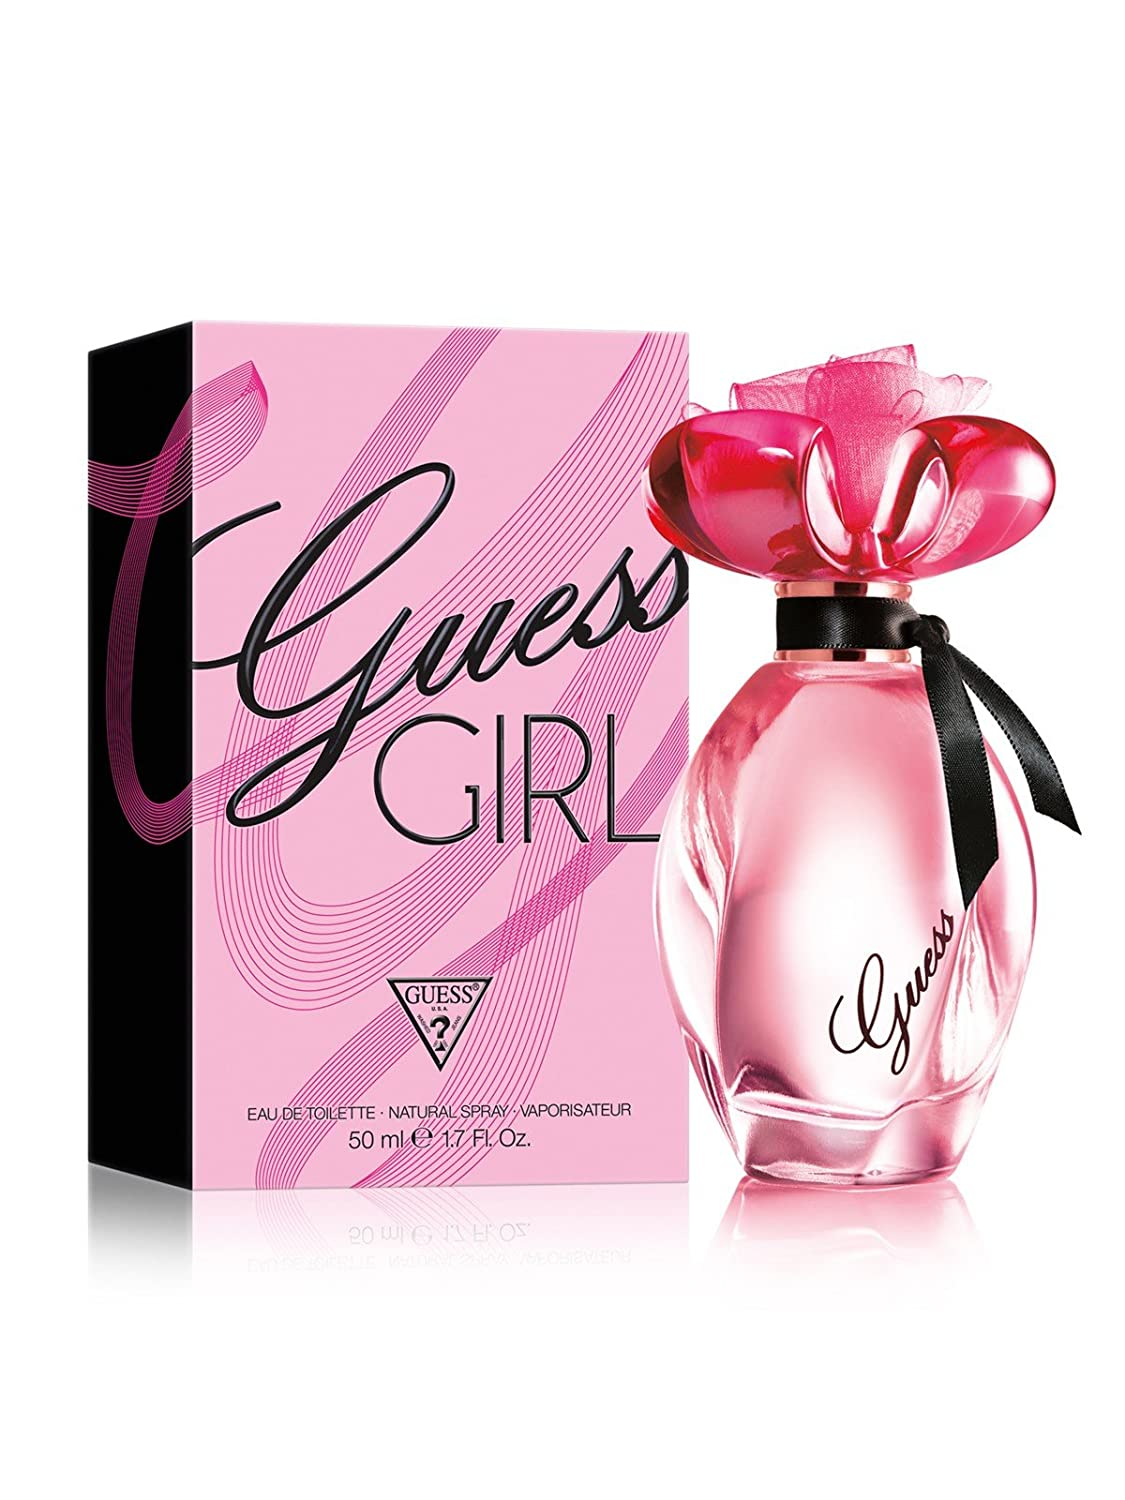 Recensioni Guess Girl Eau De Toilette di Guess | Le